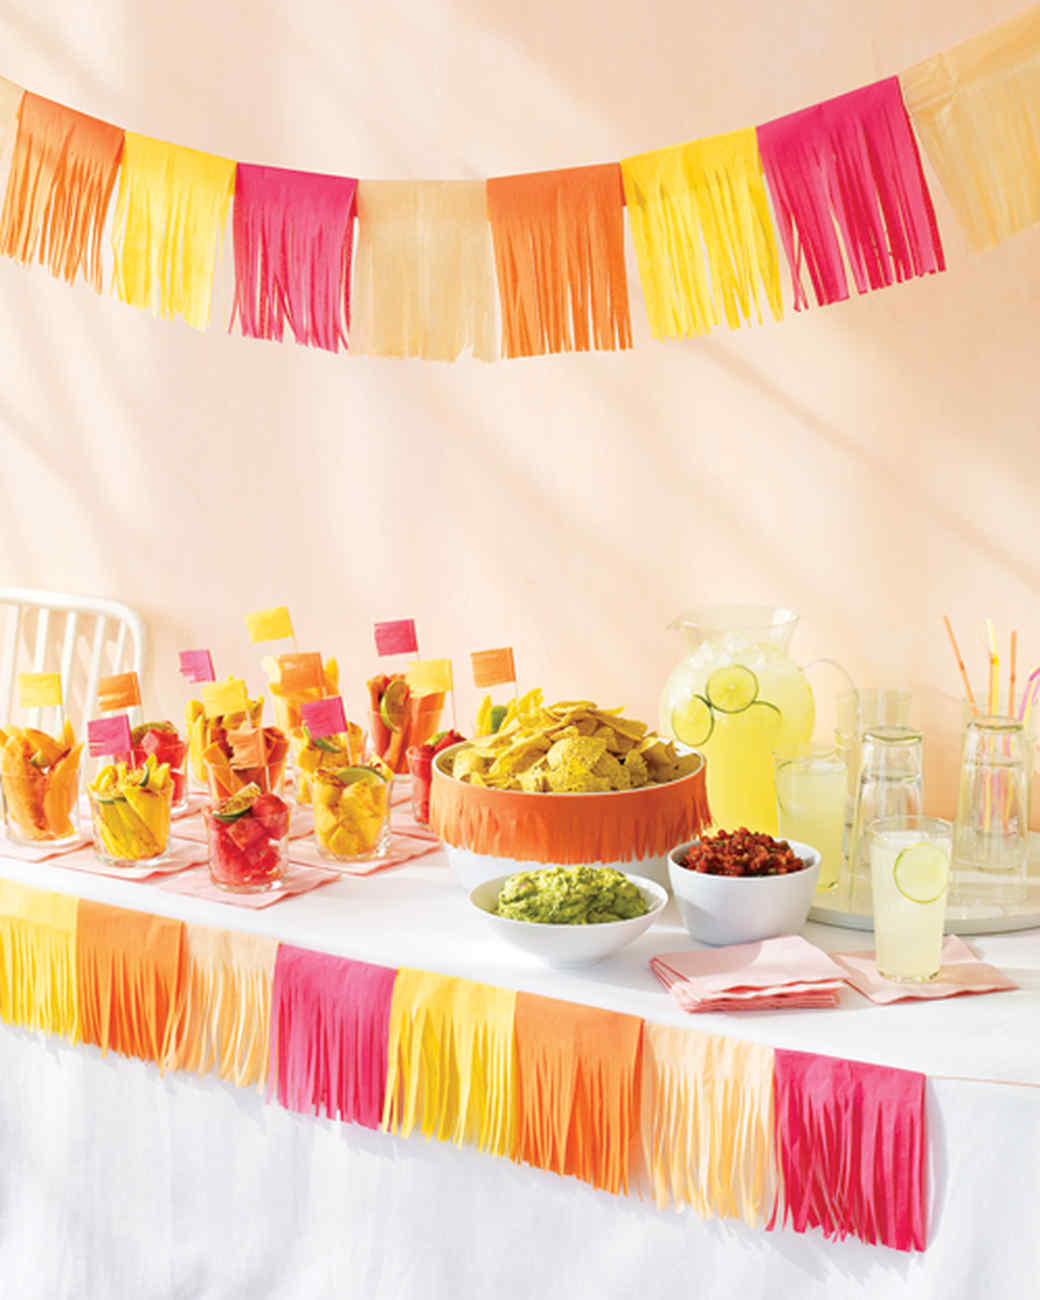 Cinco de mayo tissue paper decorations martha stewart for Decoration paper